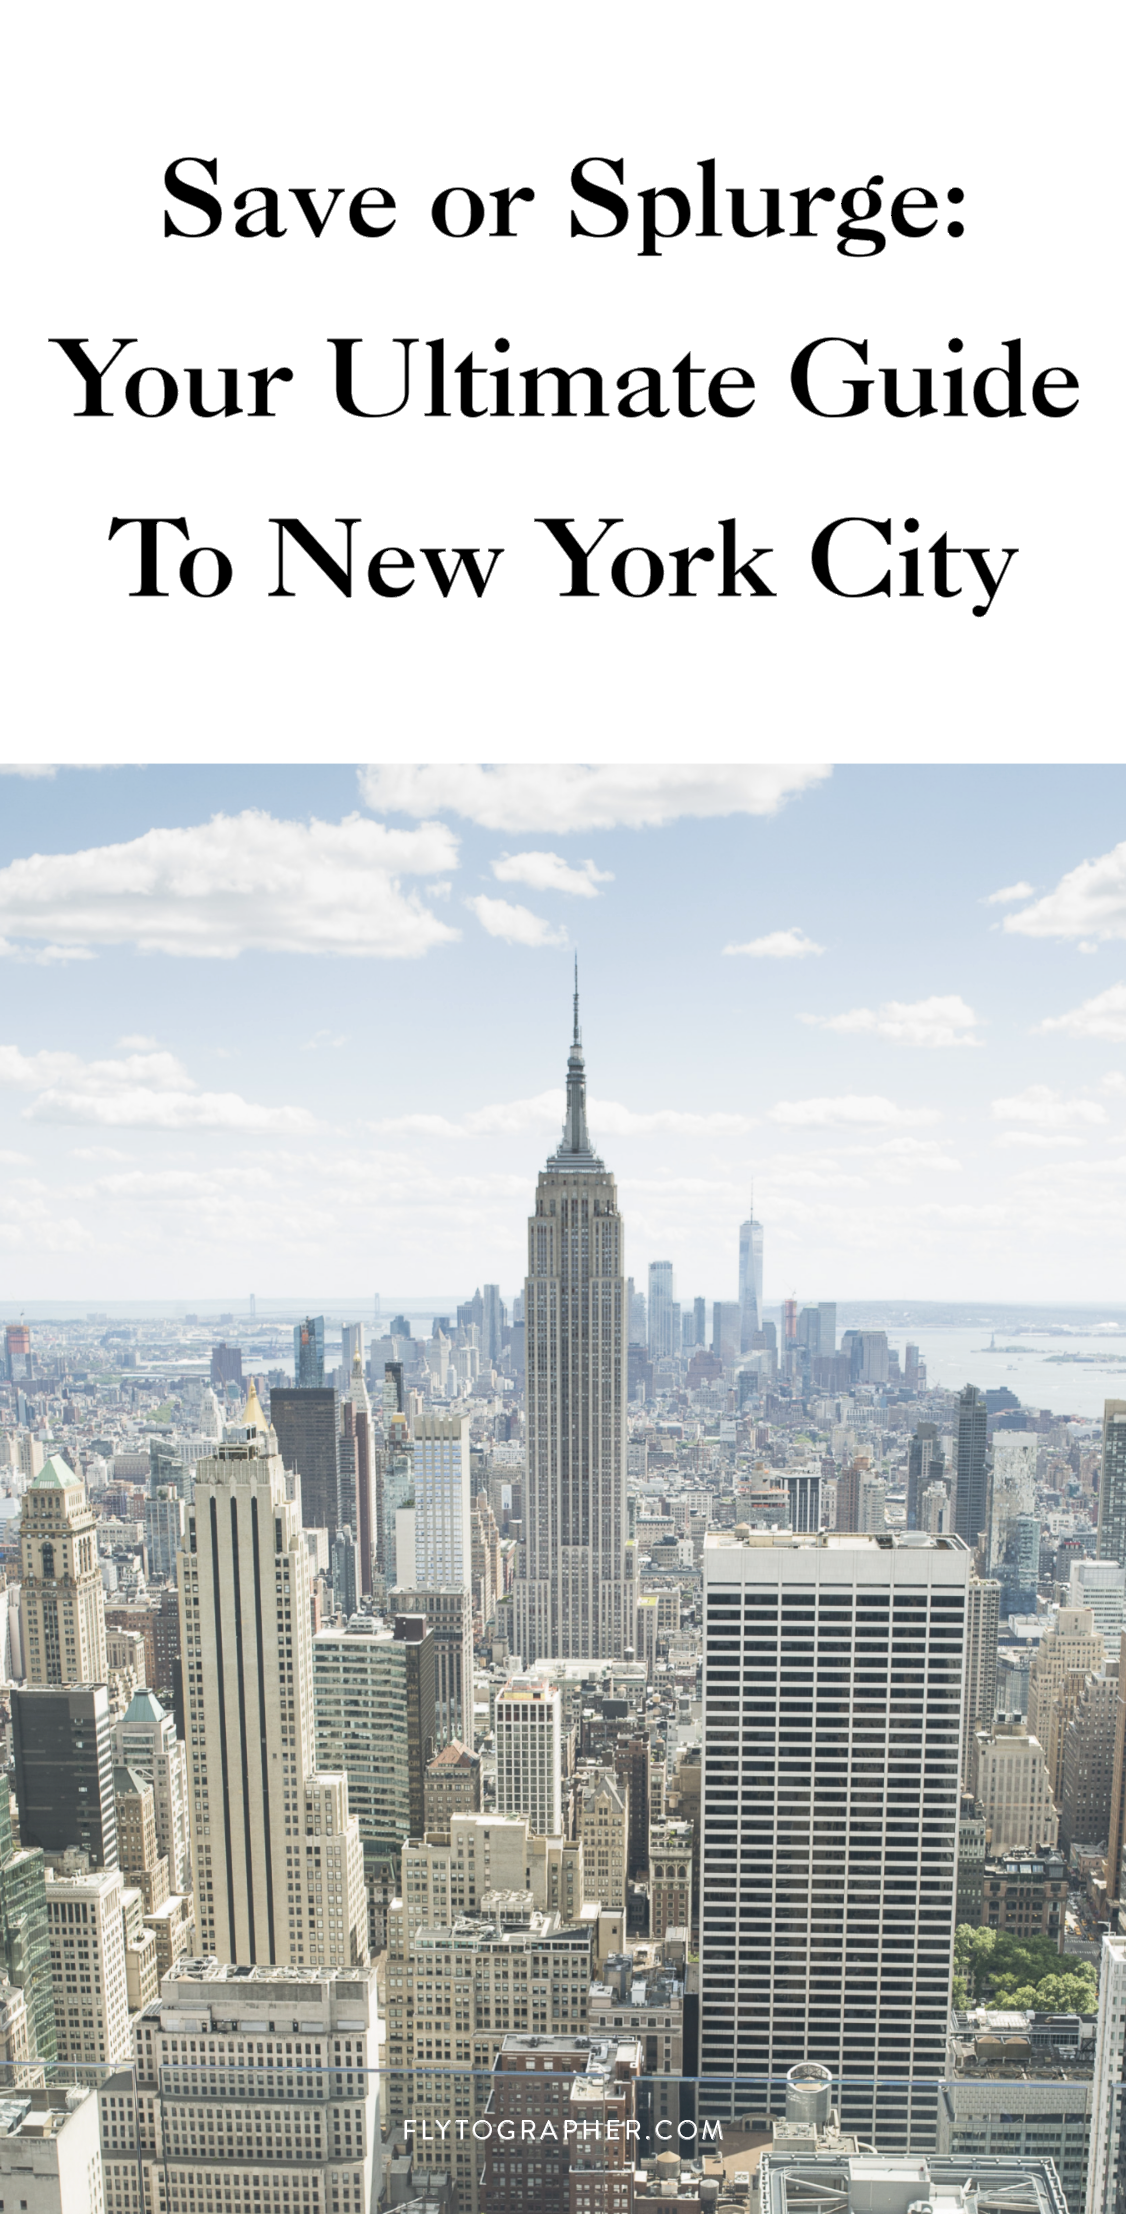 Save Or Splurge: Your Ultimate Guide To New York City